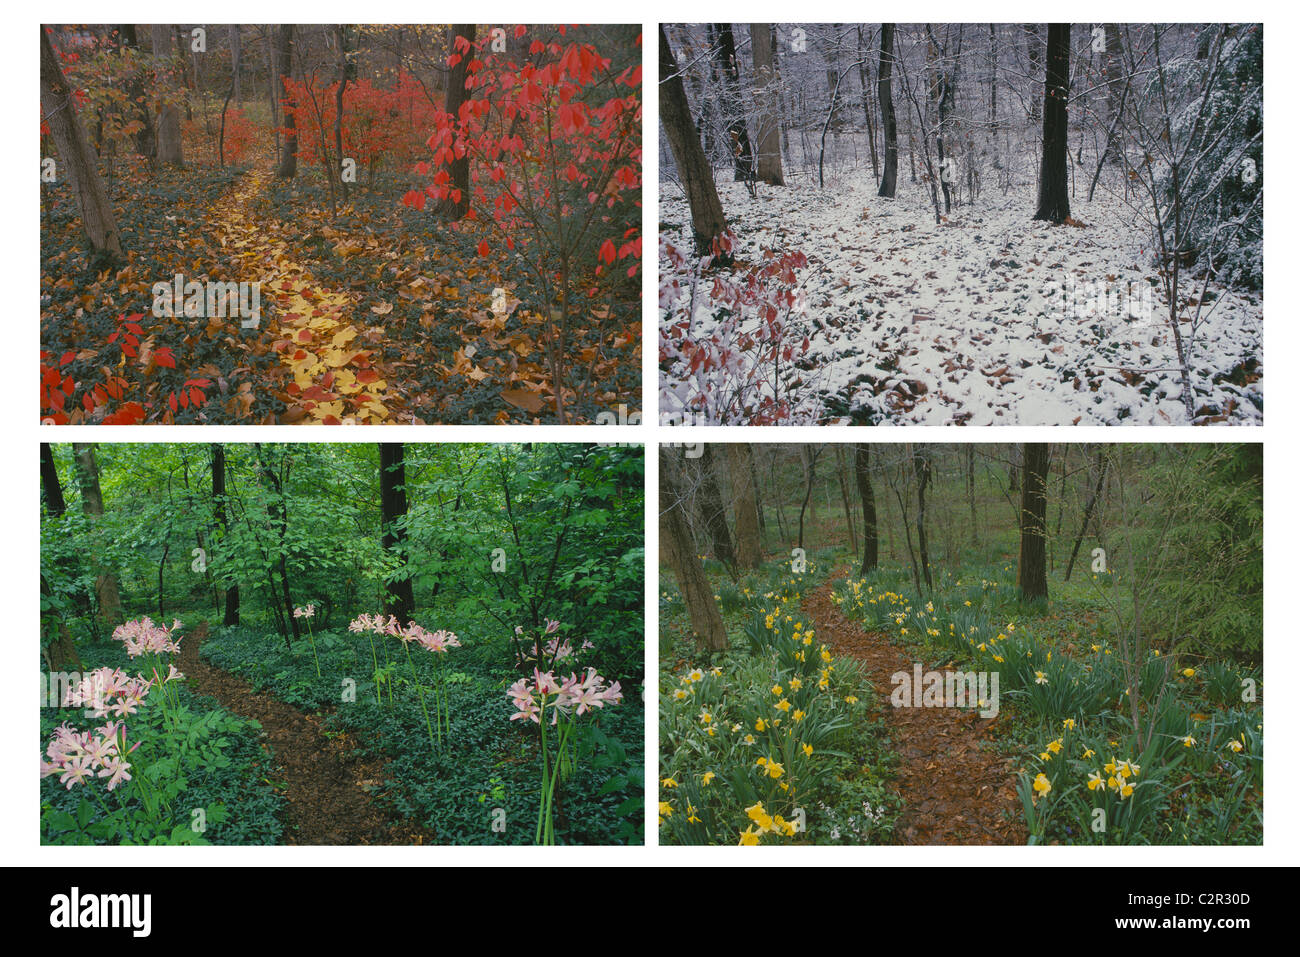 four seasons of a wooded path in backyard images available stock